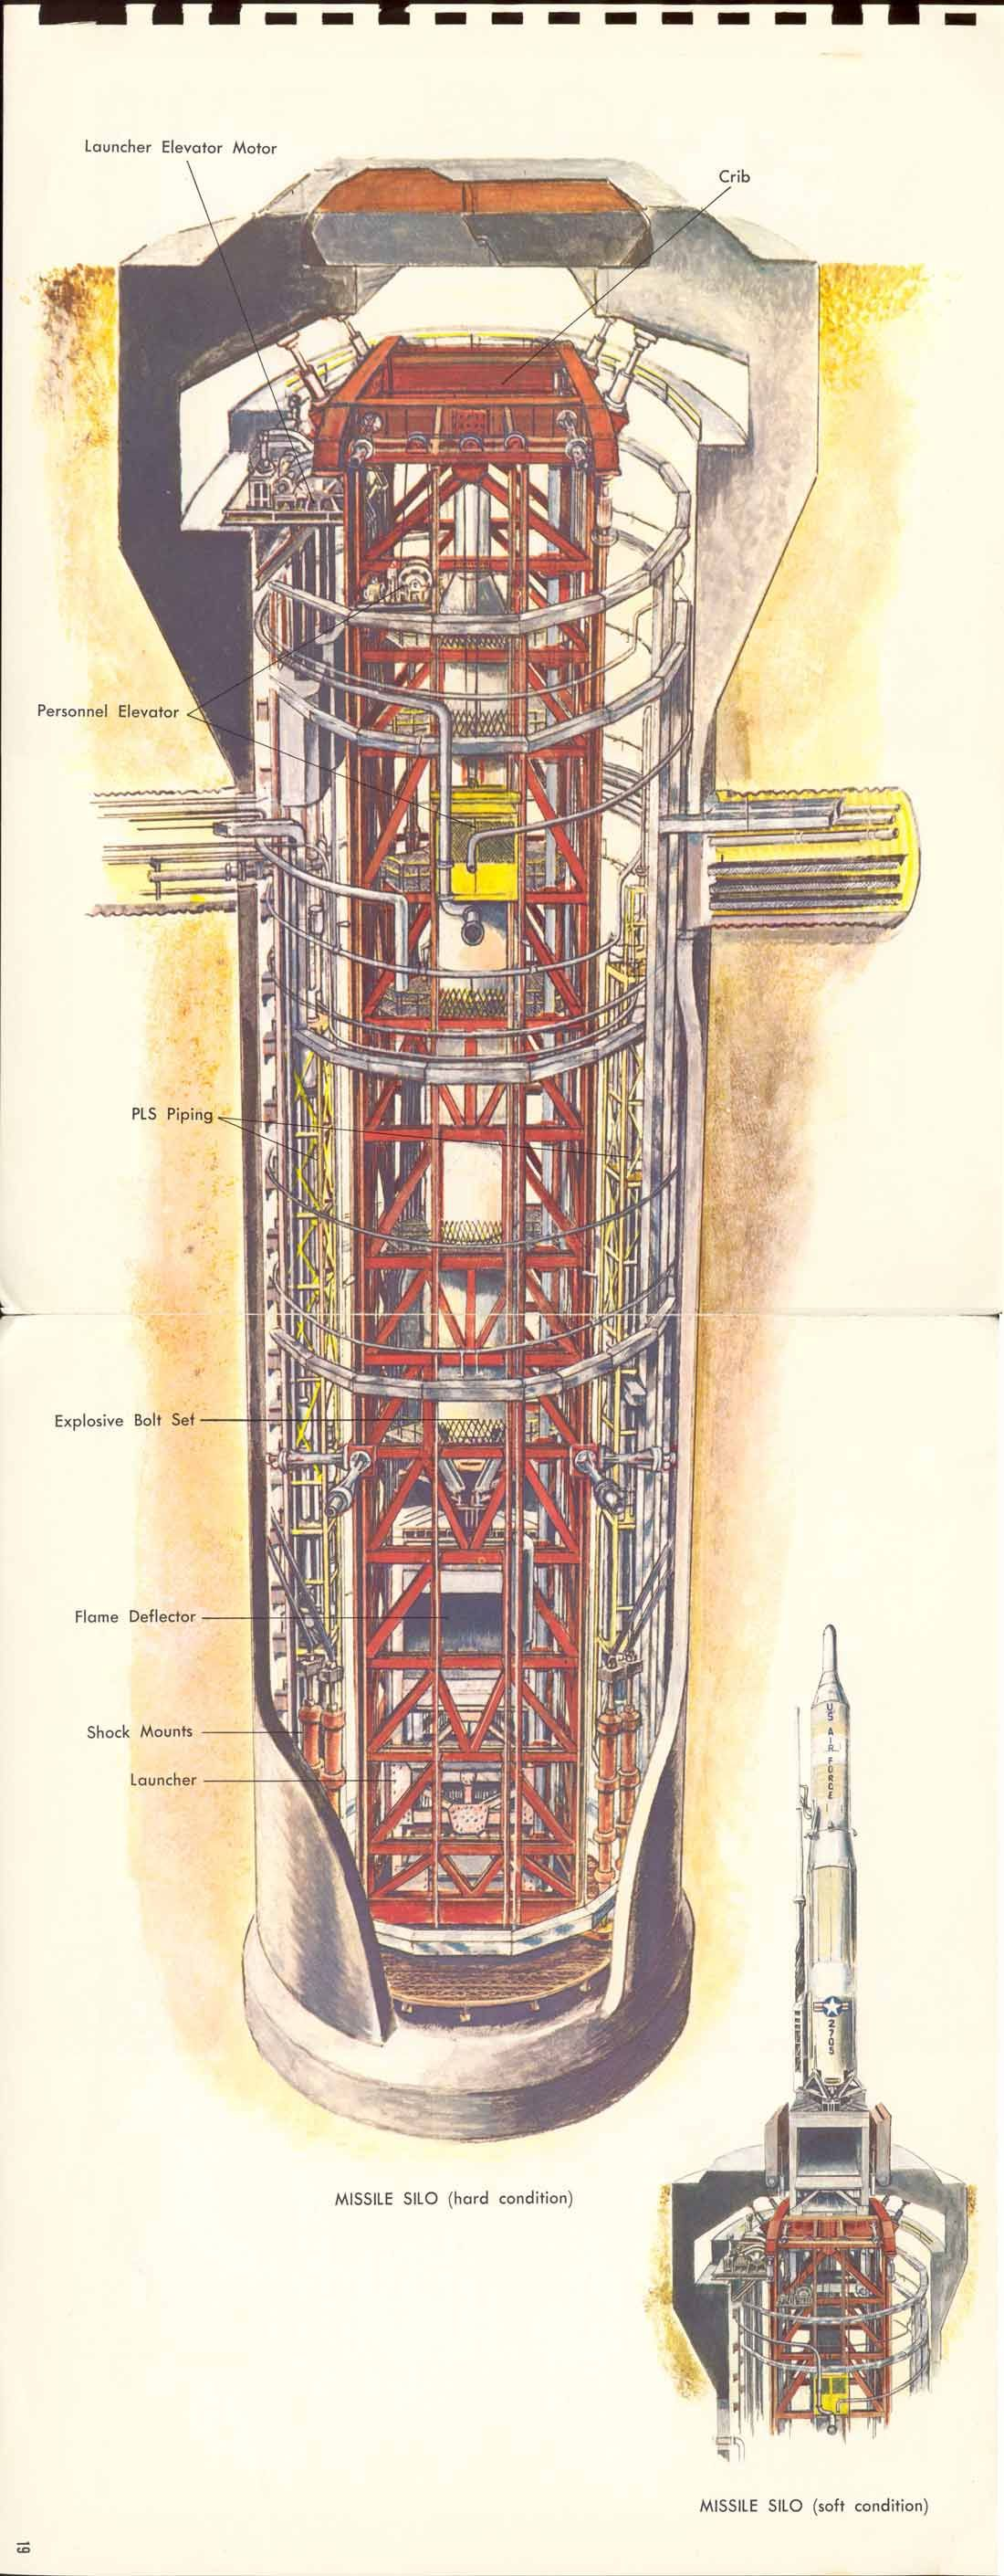 Atlas Missile Silo Google Search ICBMSLBM Pinterest - Us missile silos google maps